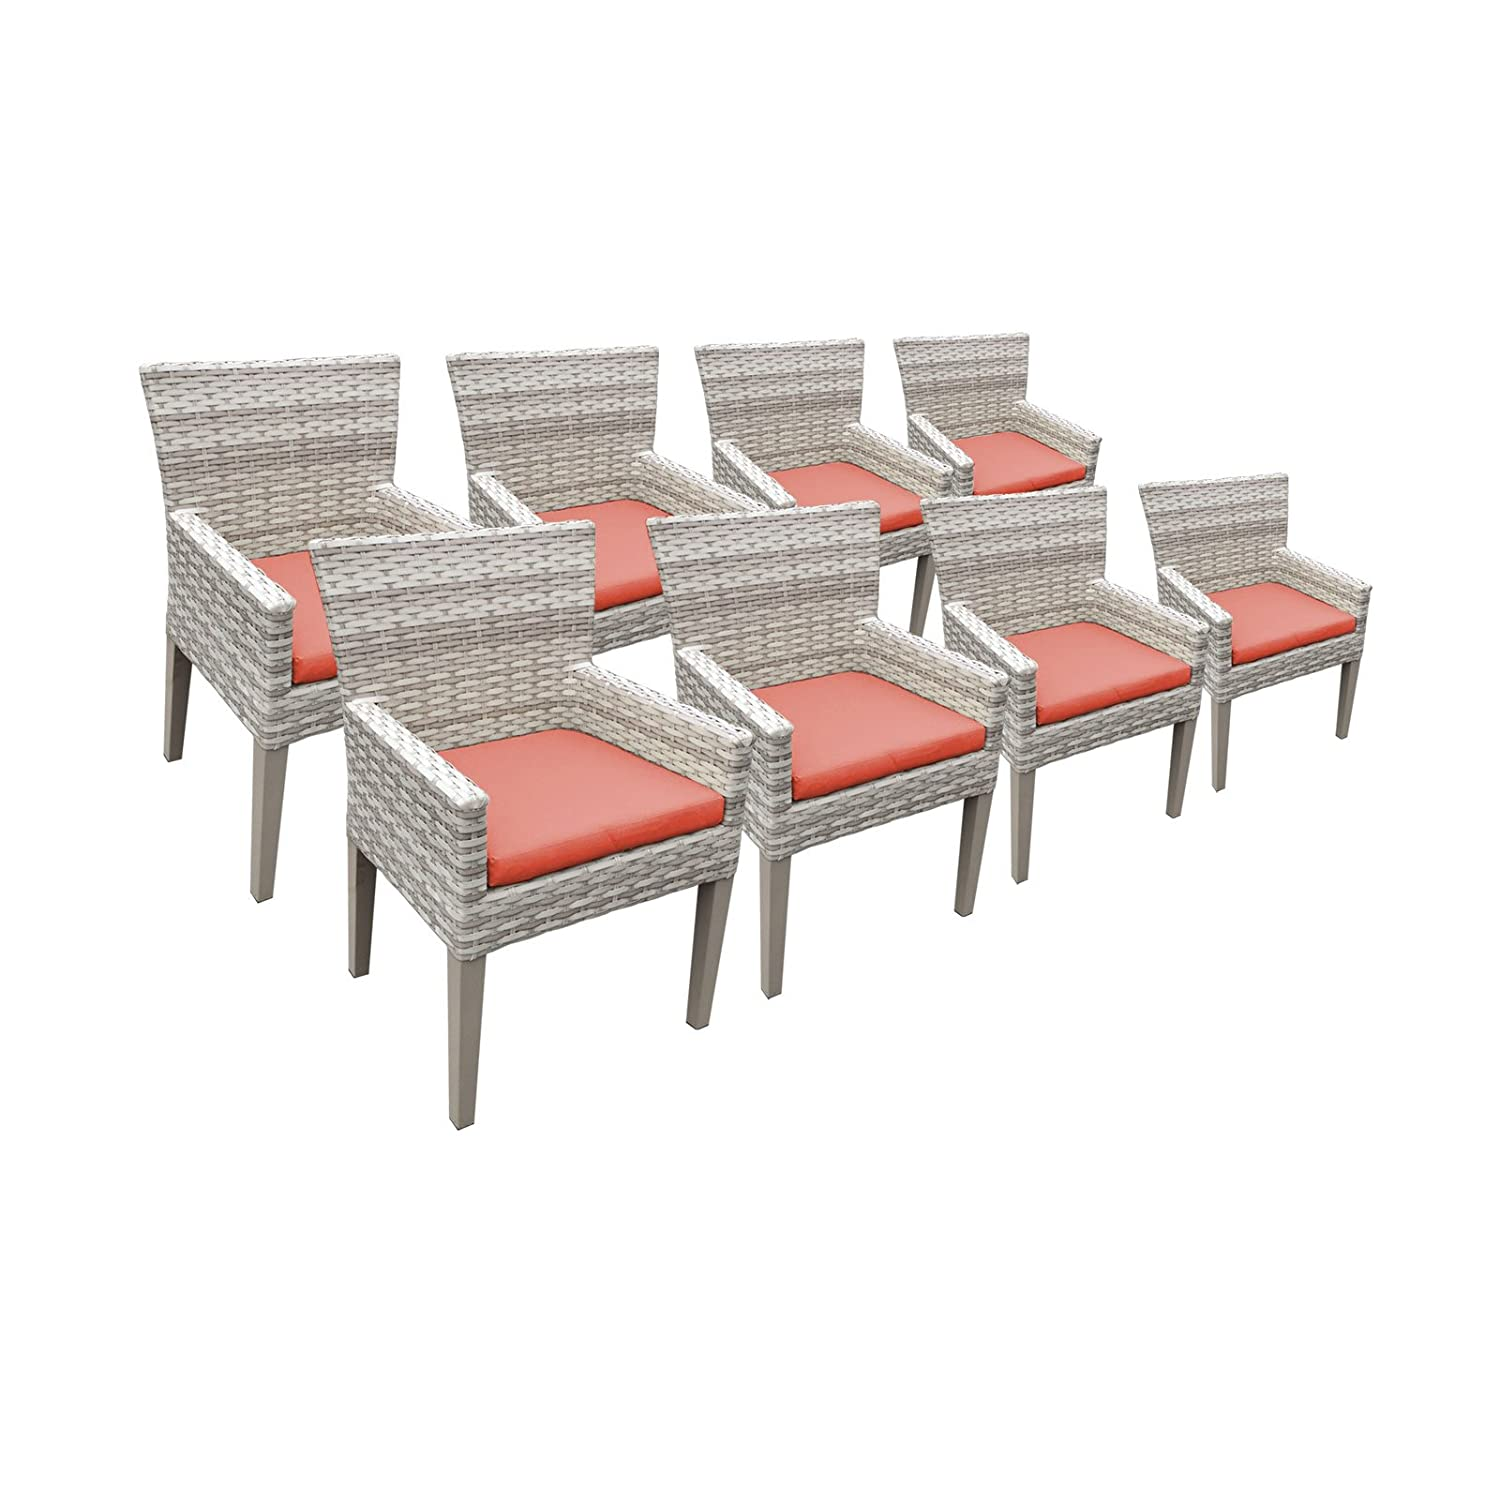 Amazon com tk classics fairmont 8 piece dining chairs with arms cocoa garden outdoor